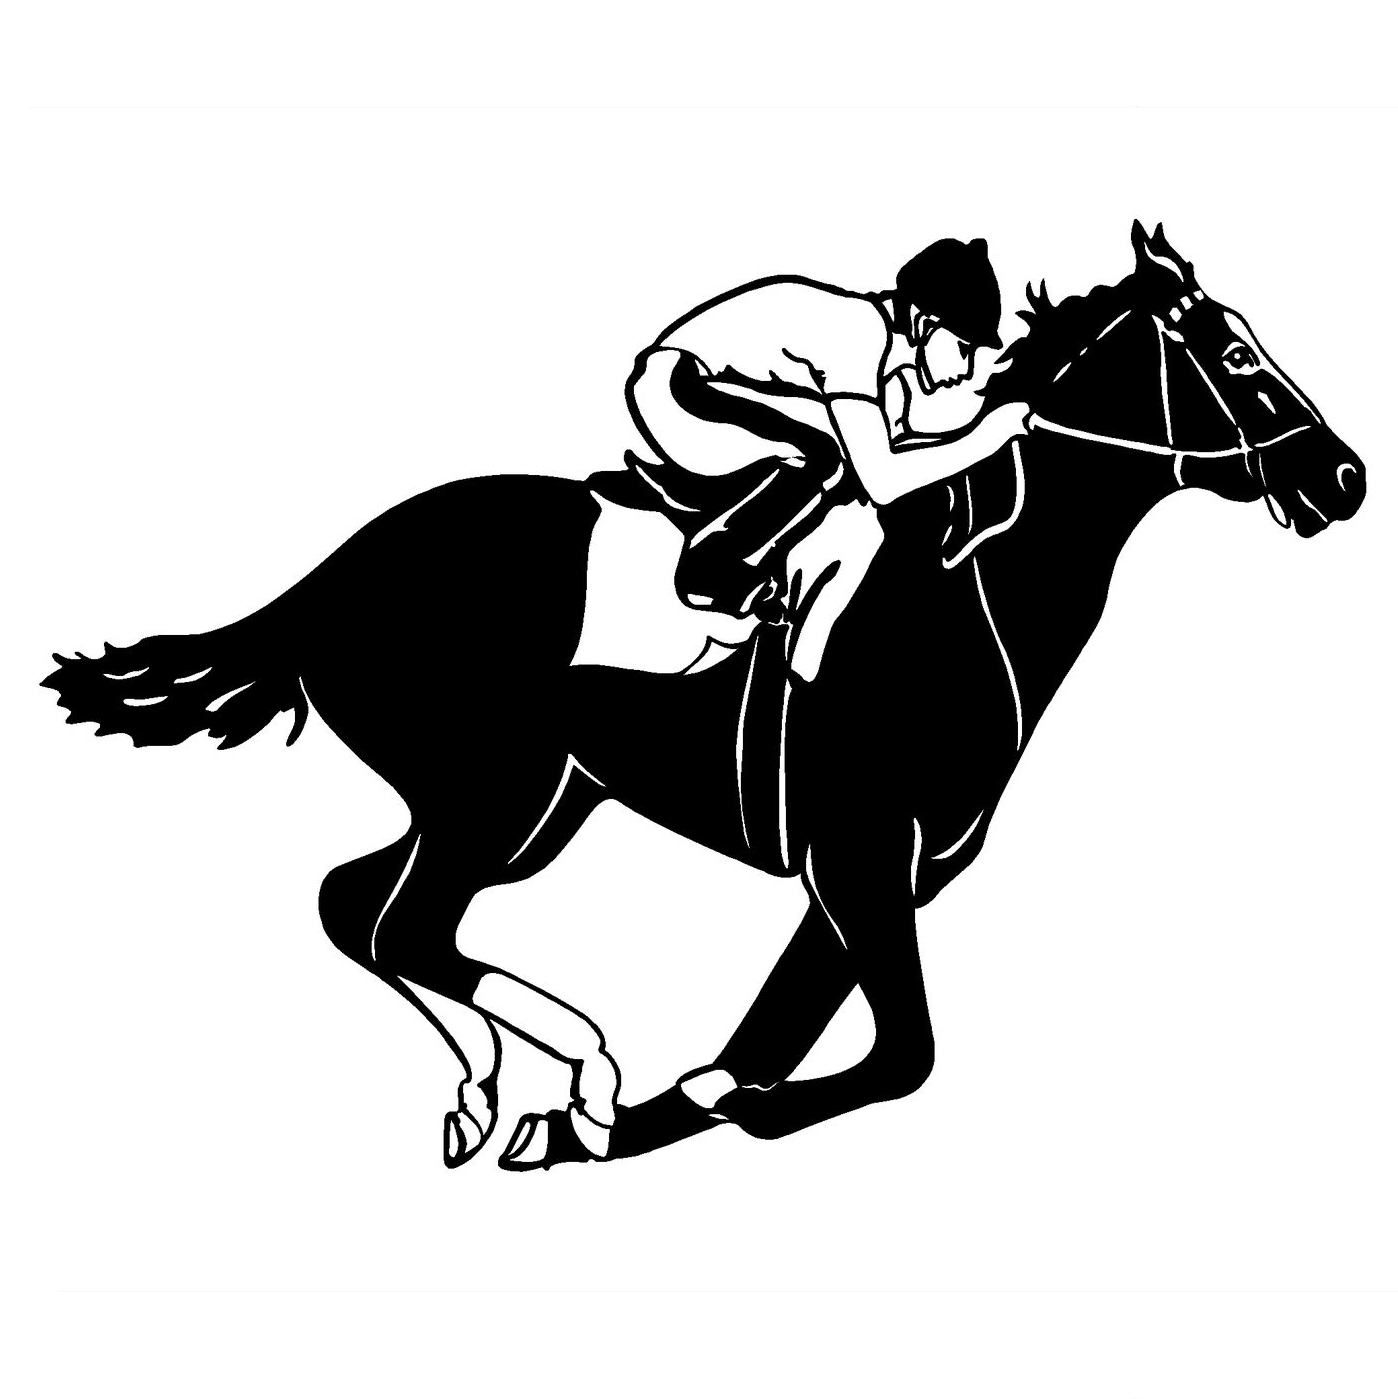 1511 3cm horse jockey cool graphics car decal thoroughbred racing race window trailer vinyl stickers in car stickers from automobiles motorcycles on